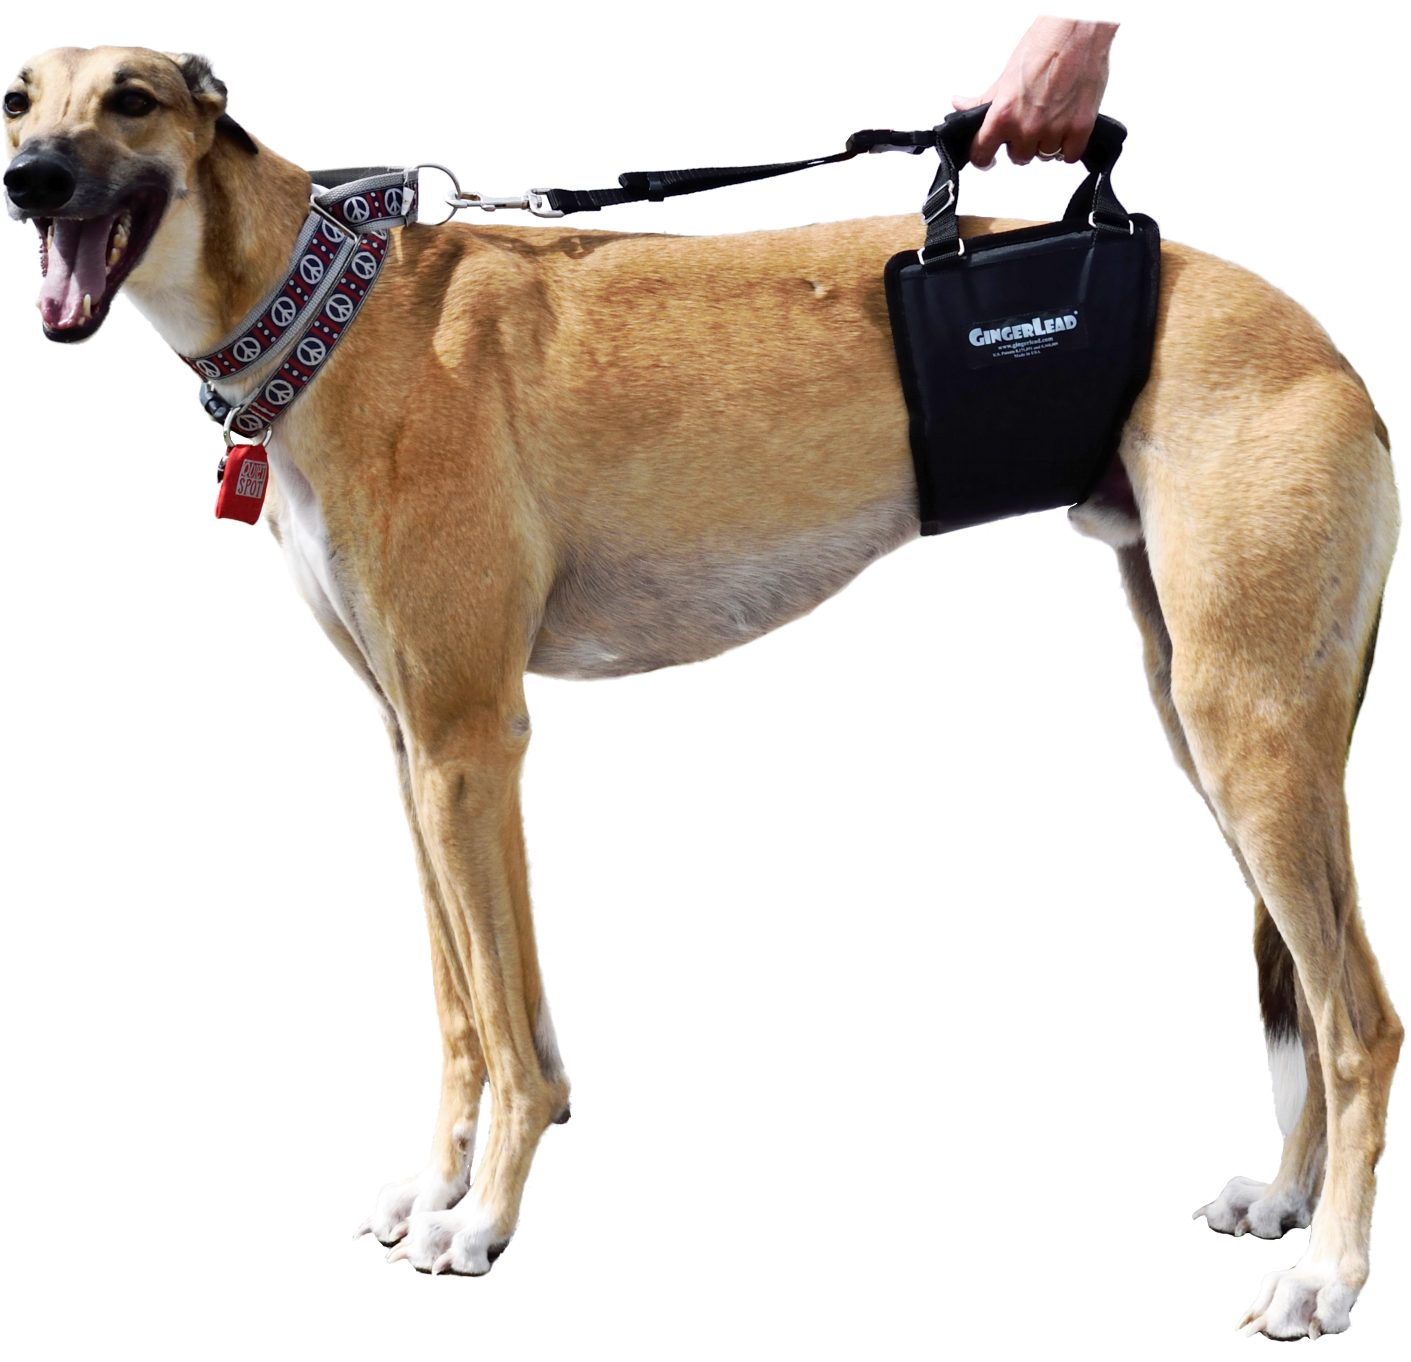 GingerLead Dog Sling, Tall Male2